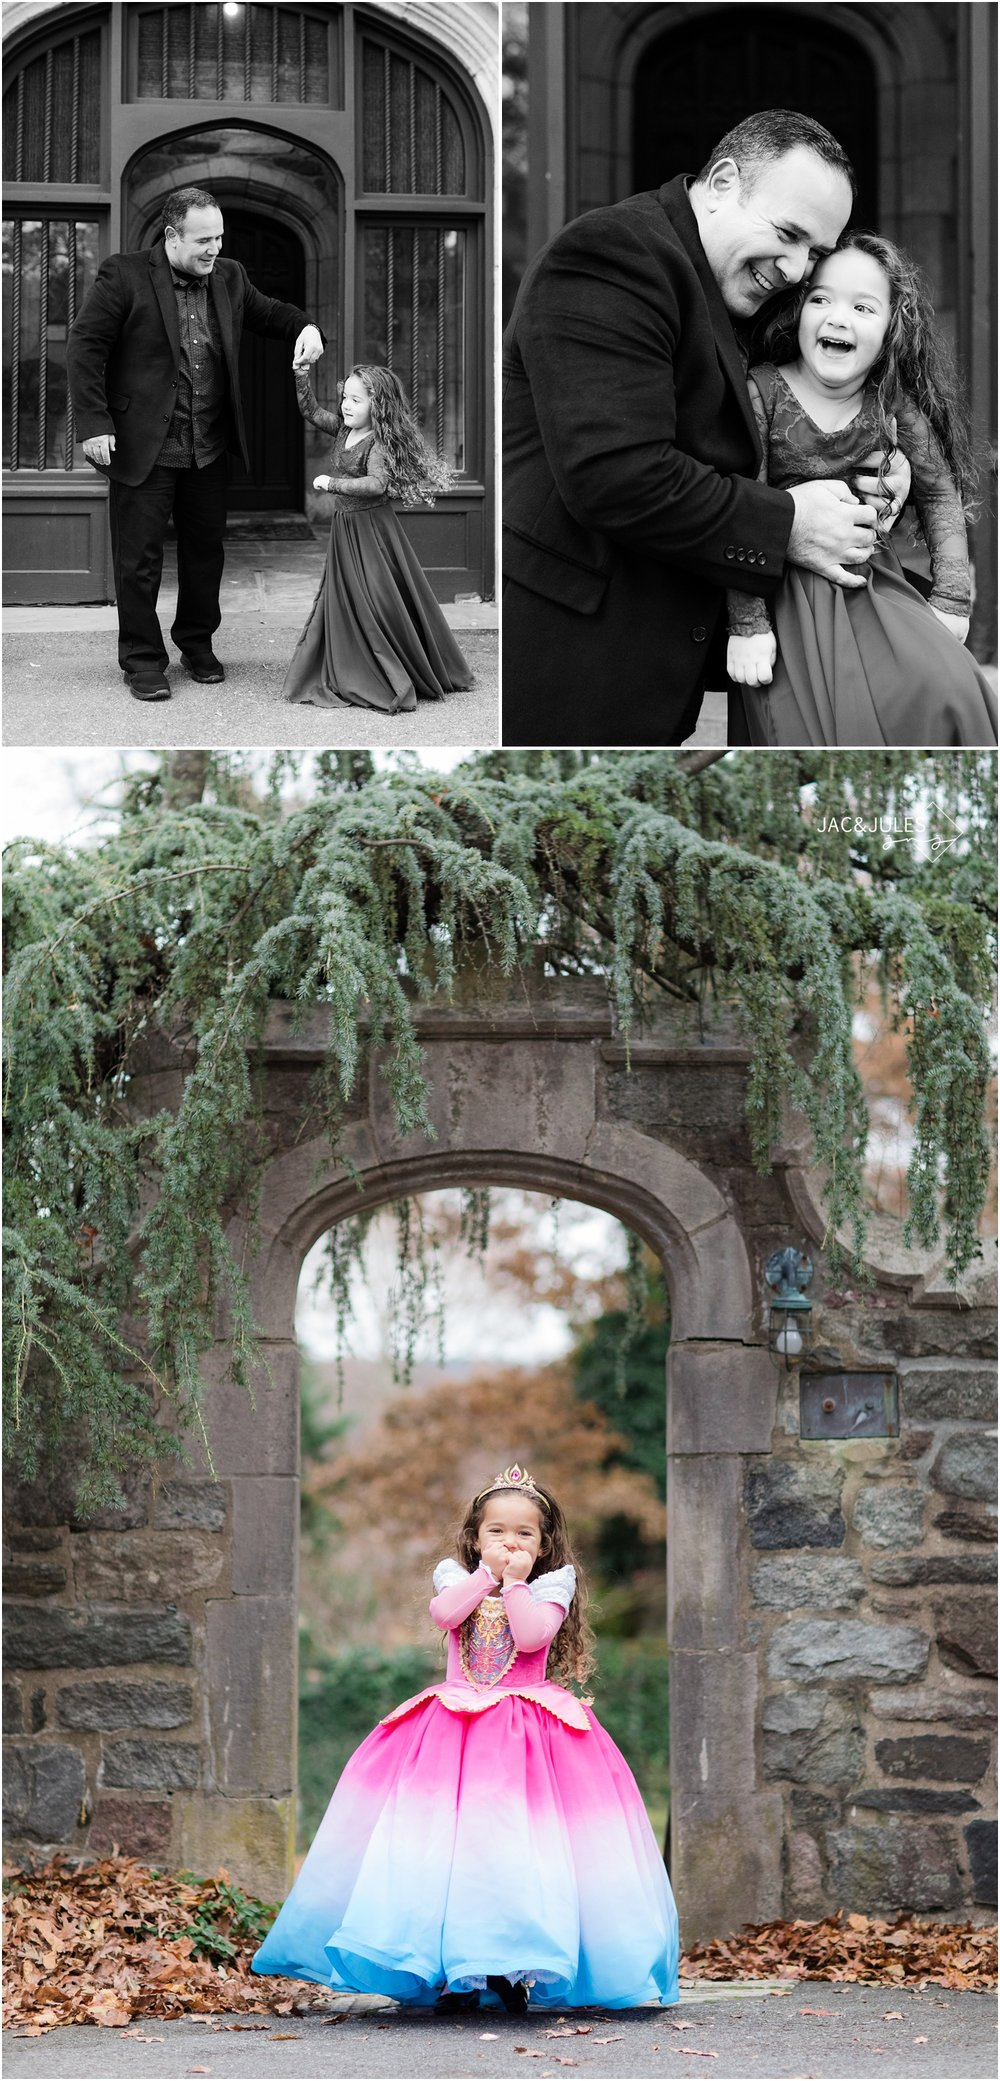 fun daddy daughter photos in front of the castle at Skylands Manor in Ringwood, NJ.